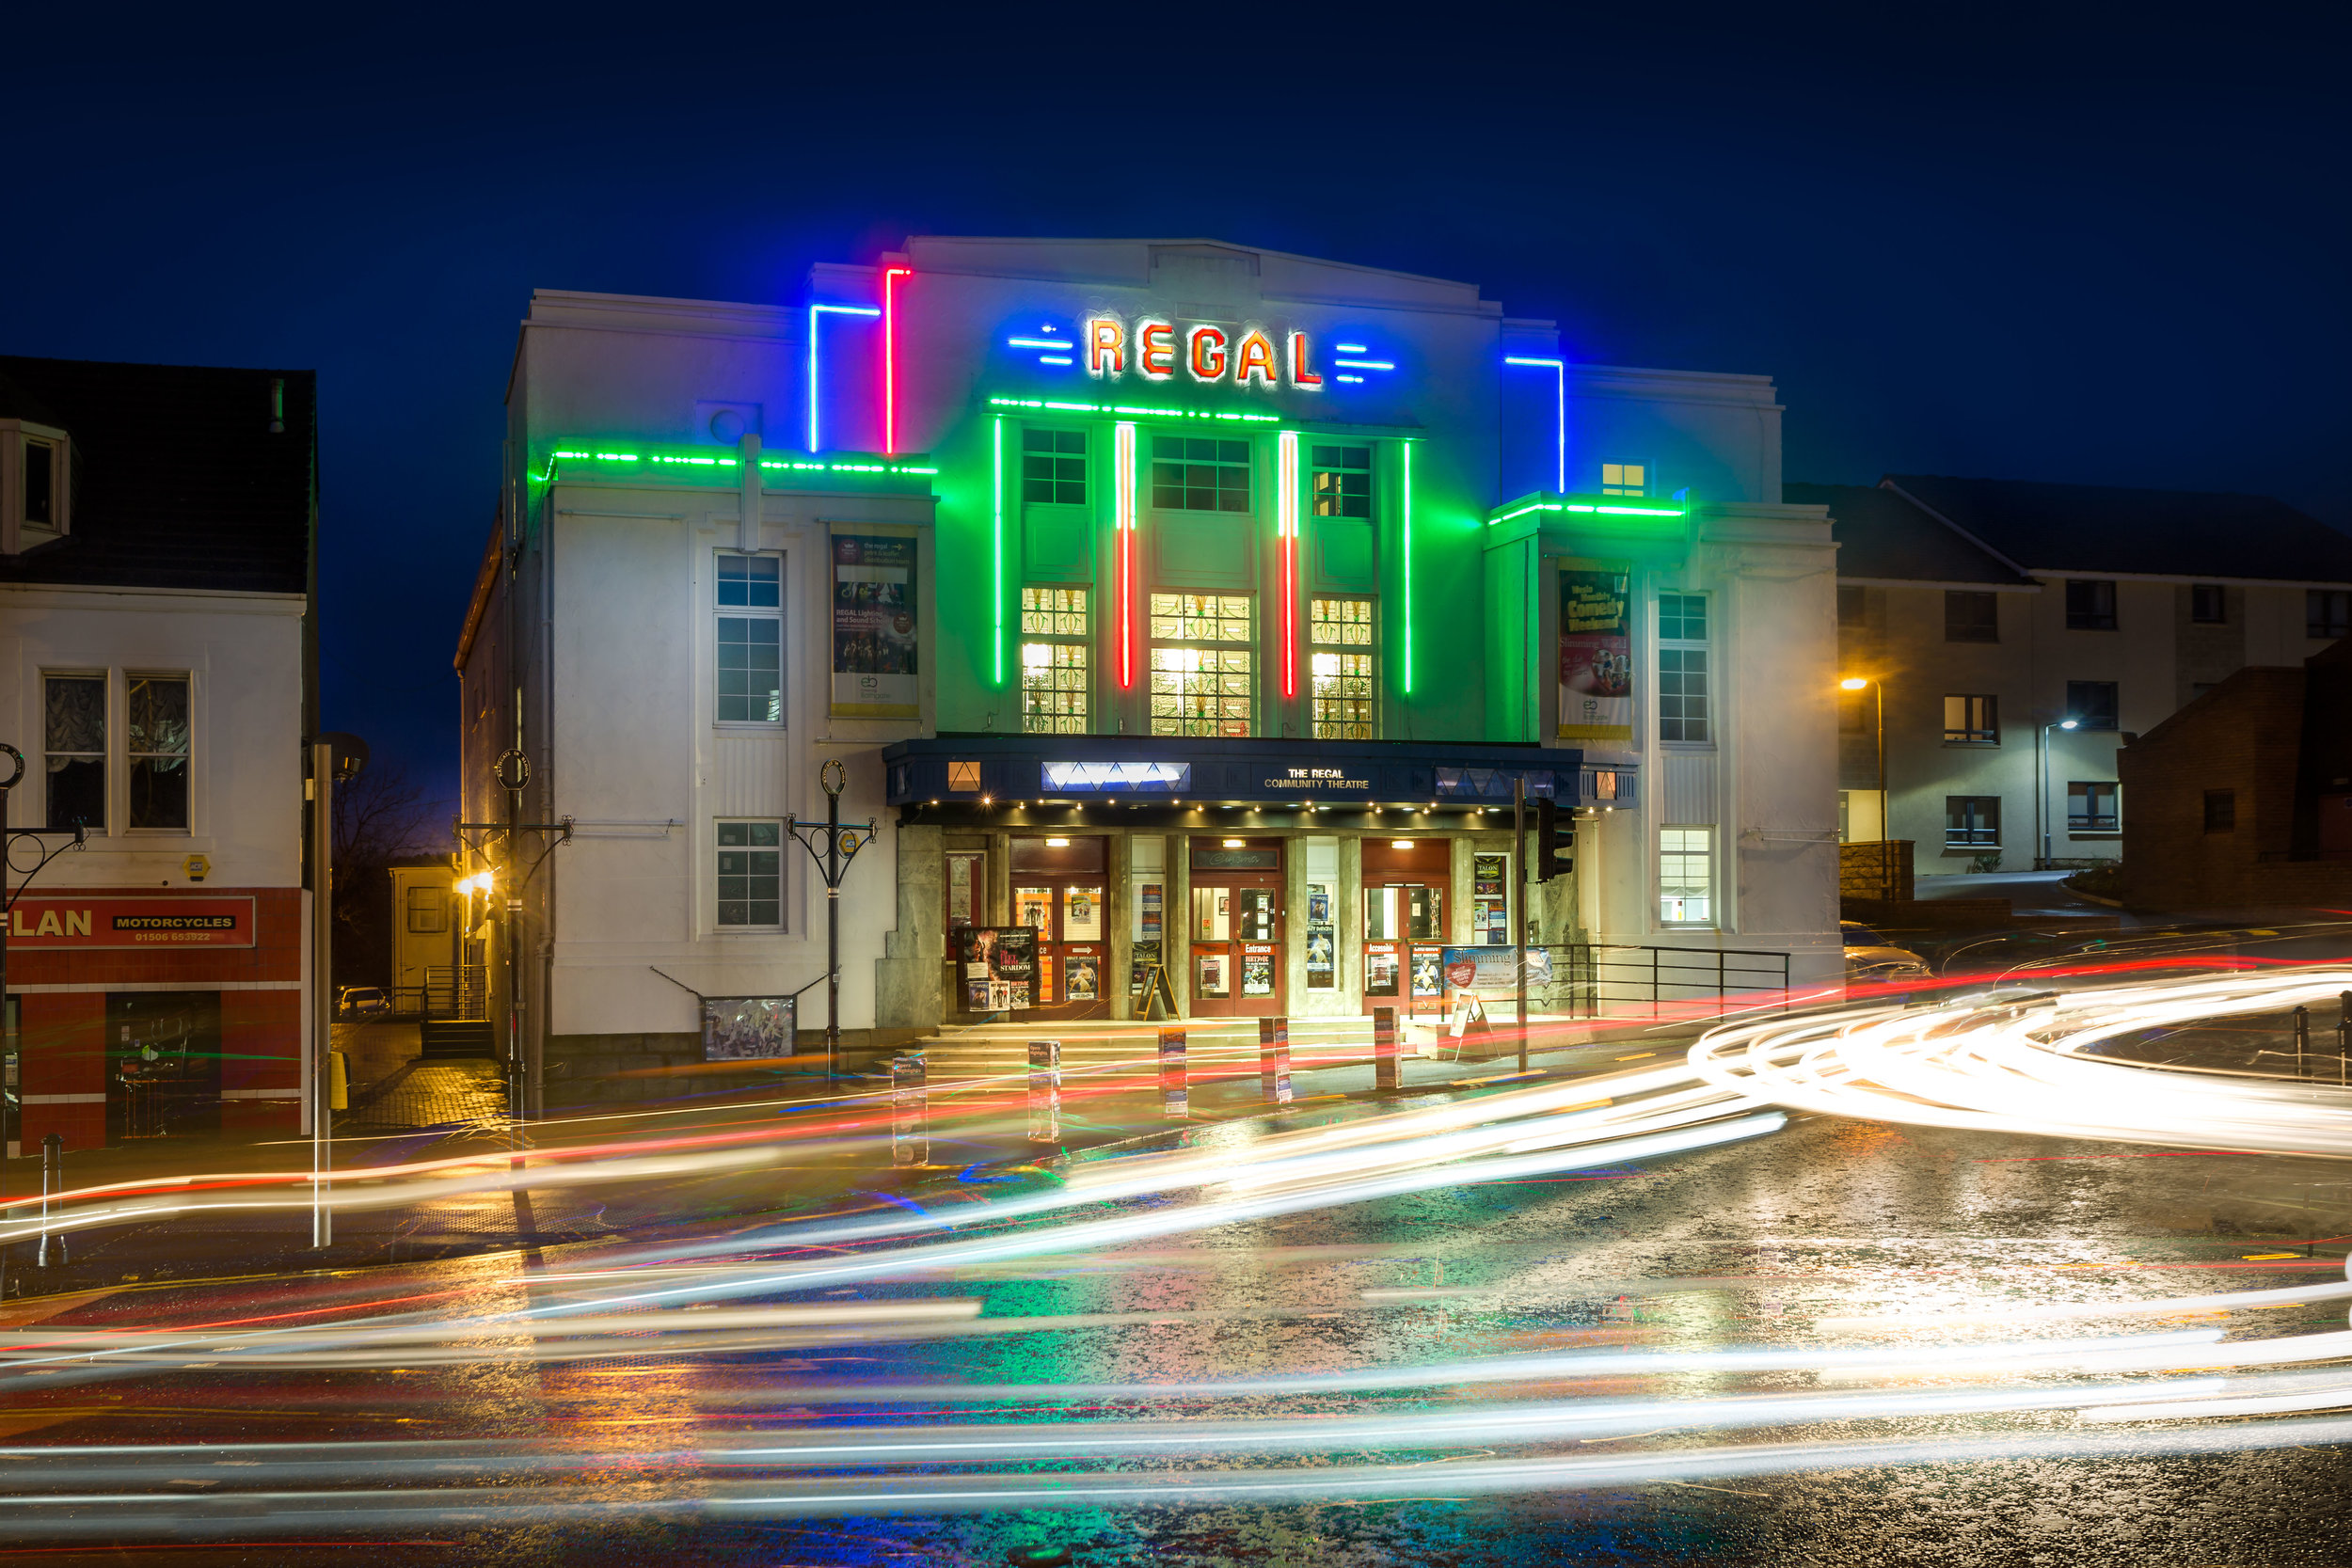 Bathgate-Regal-theatre-night-photography-1.jpg